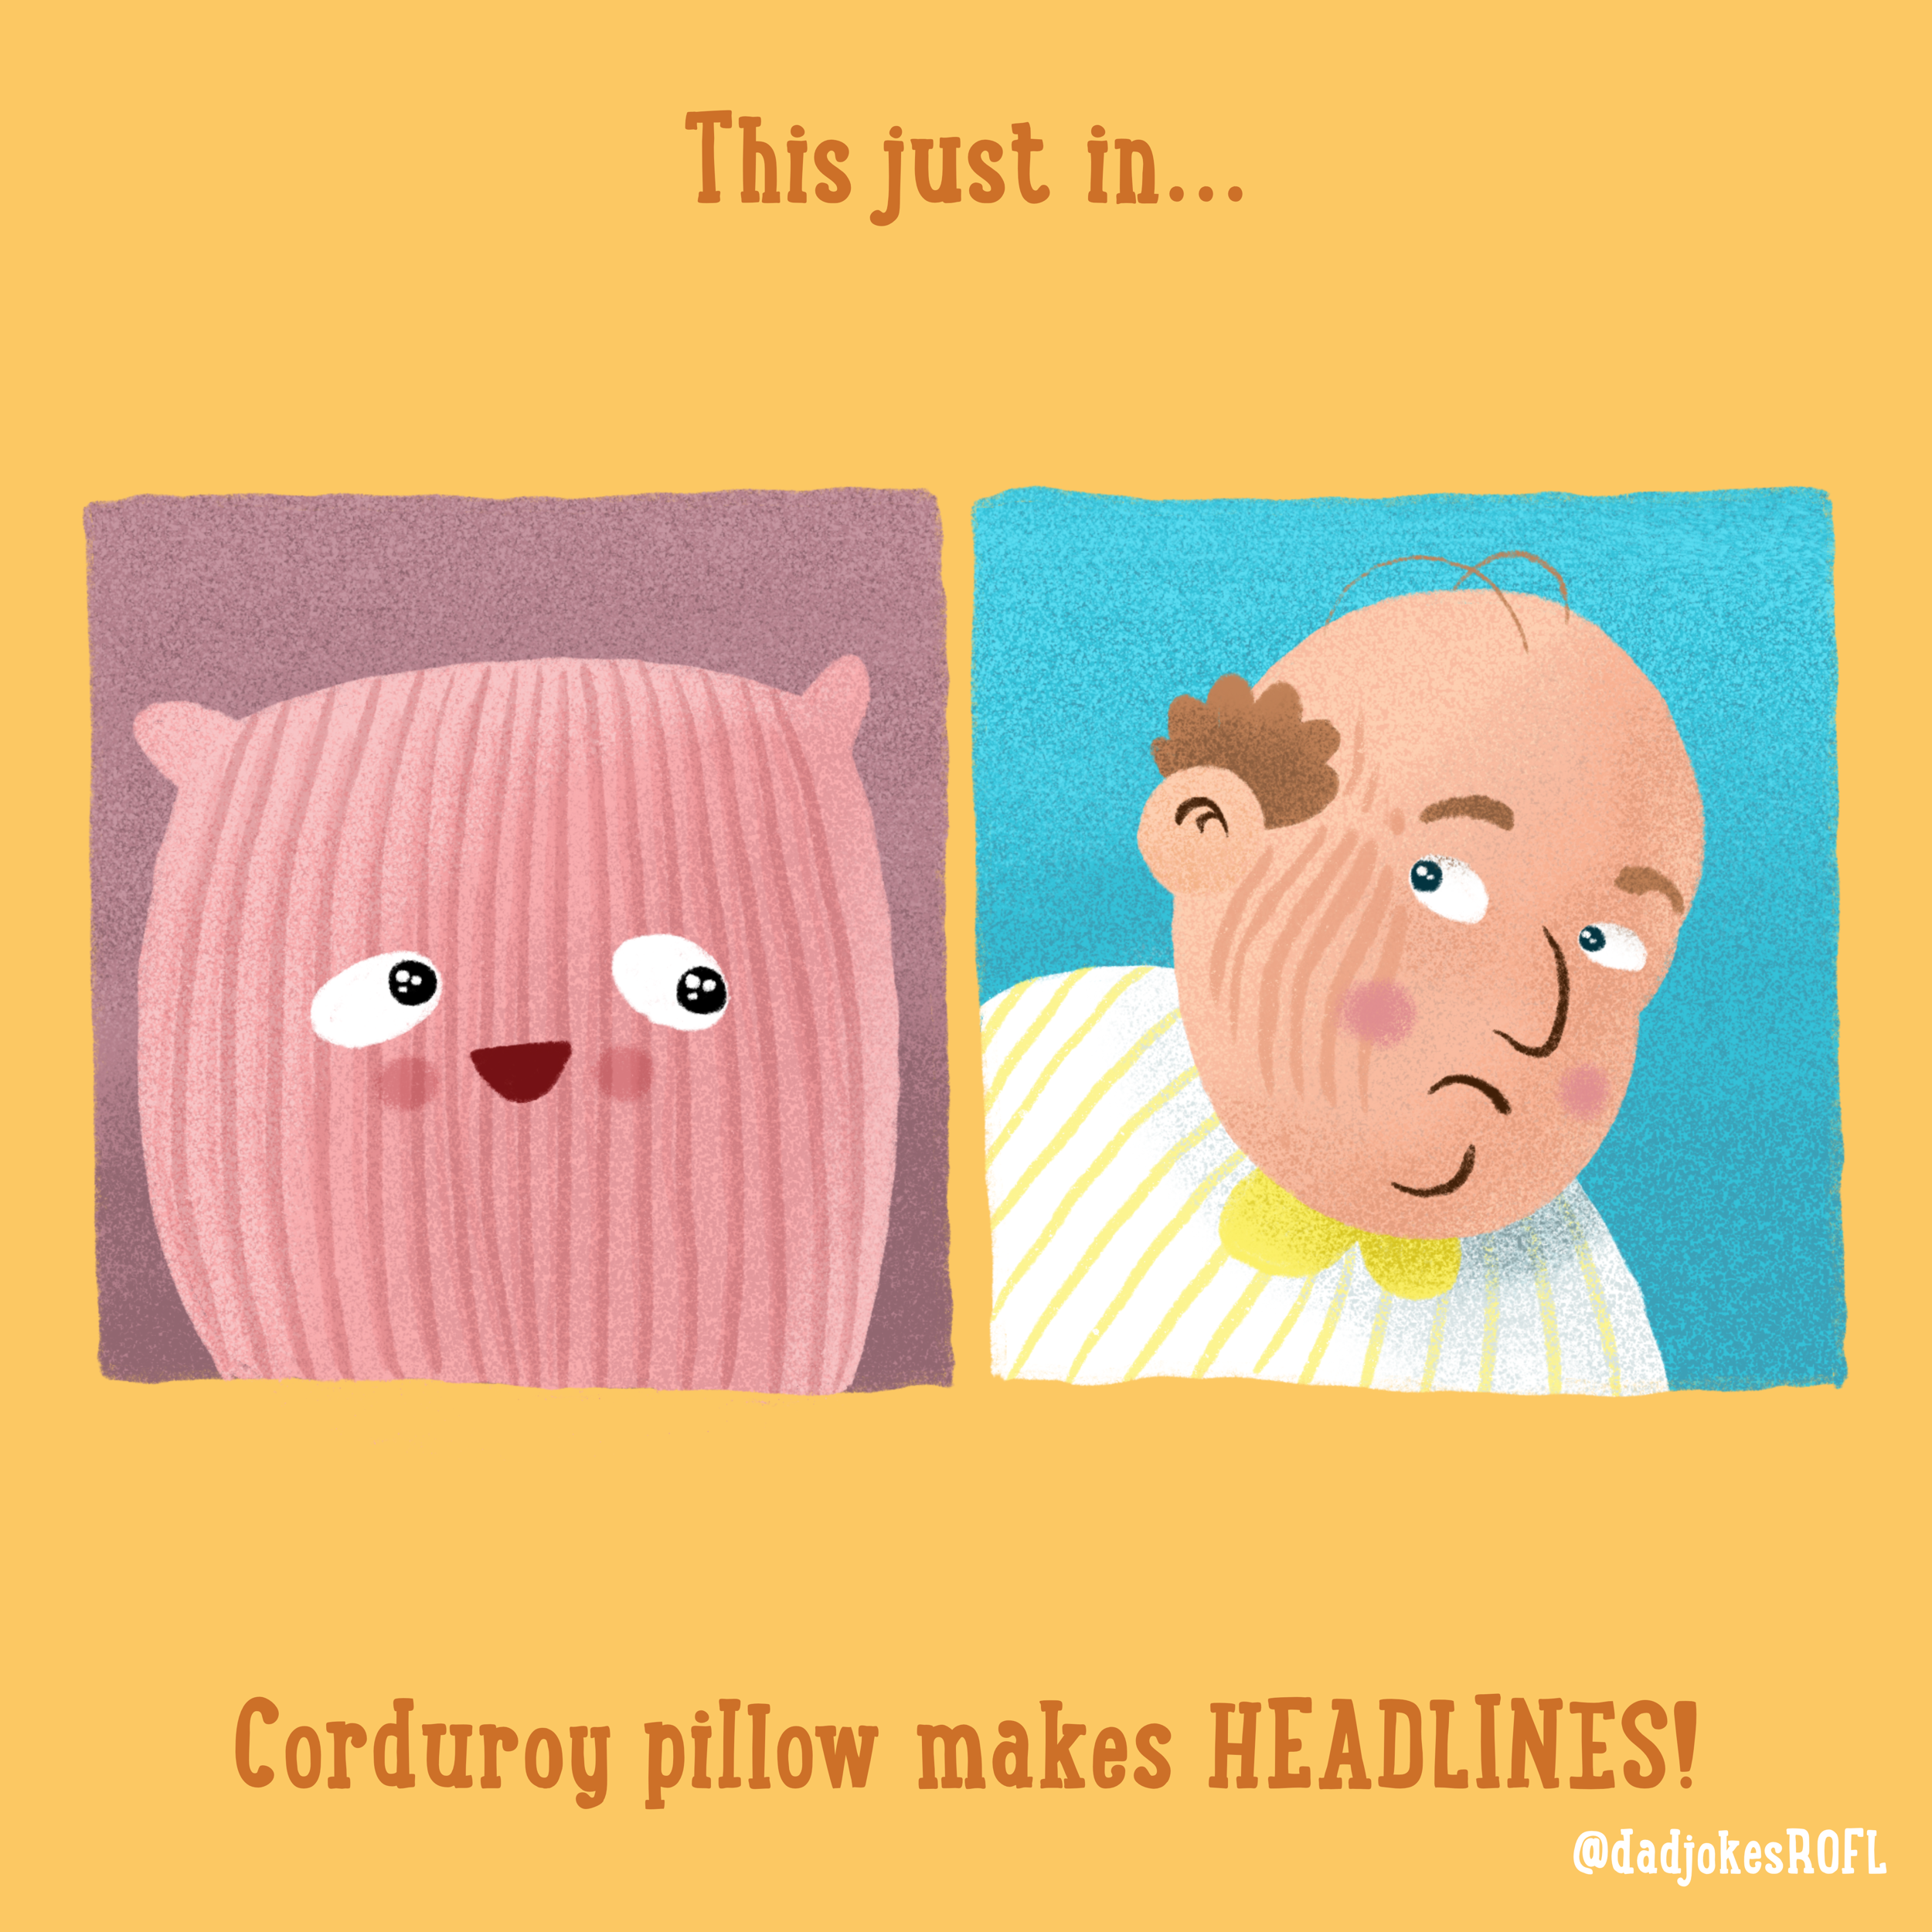 This just in... Corduroy pillow makes HEADLINES!